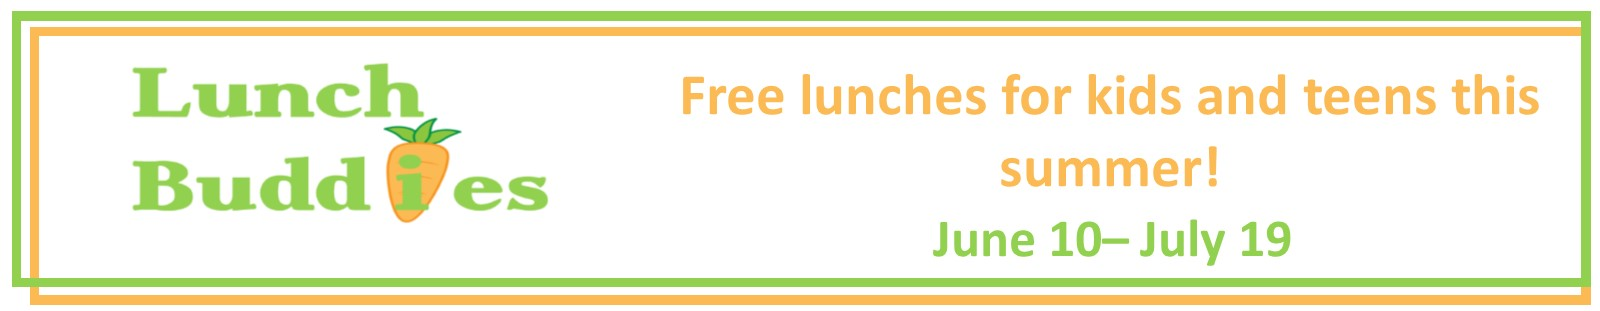 Lunch buddies-lunches for kids and teens June 10-July 19